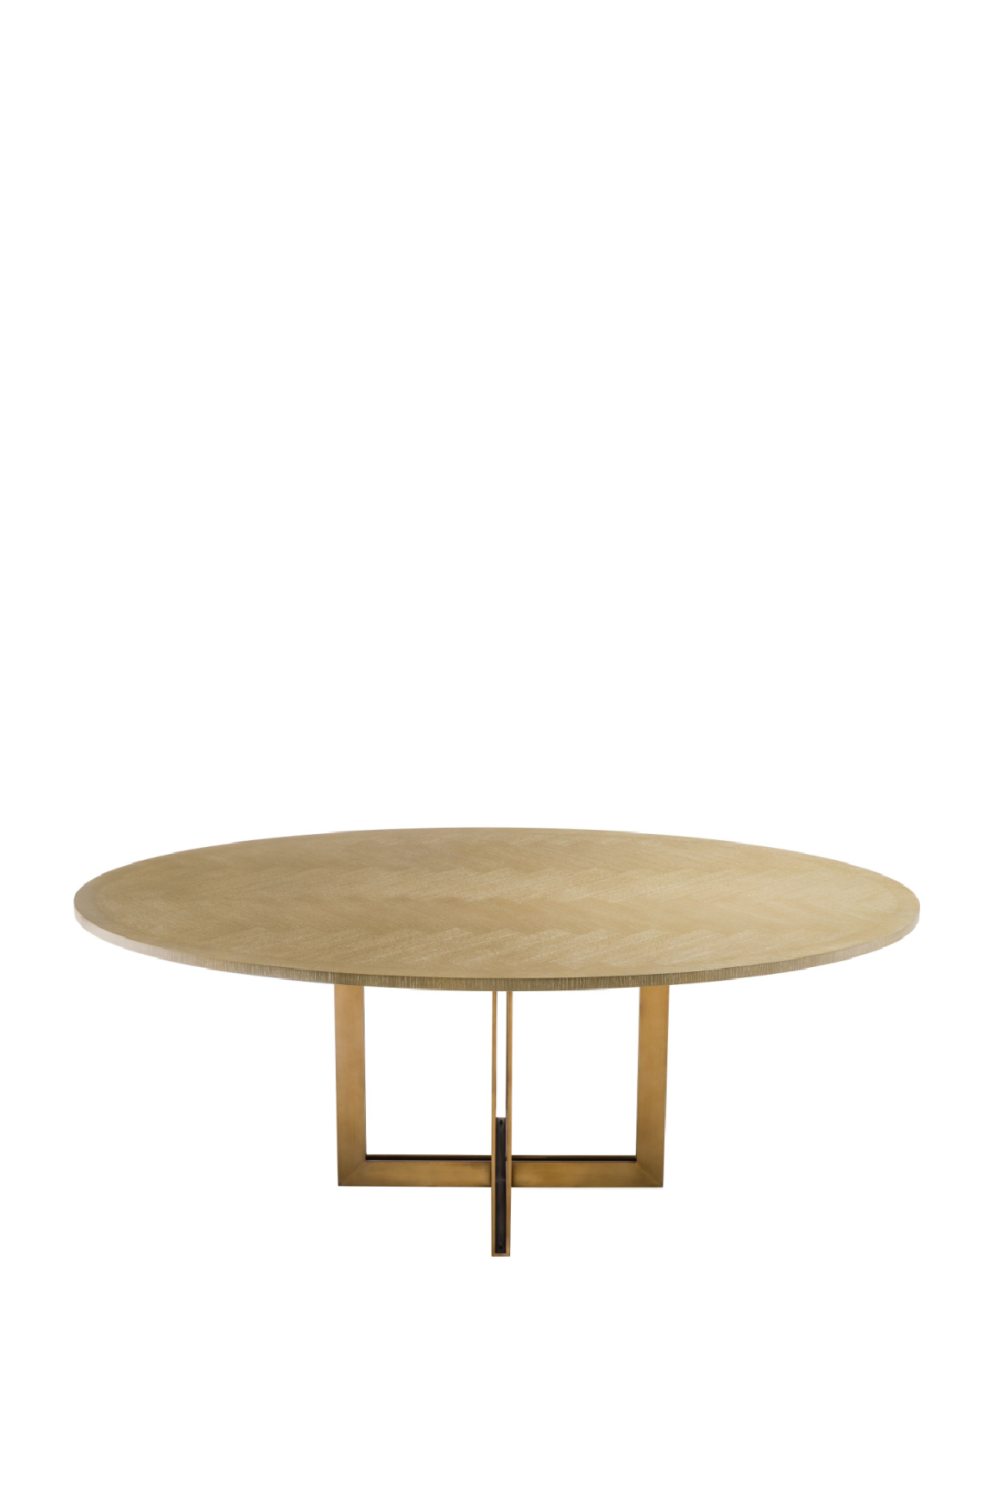 Oval Oak Dining Table | Eichholtz Melchior |  #1 Eichholtz  Retailer